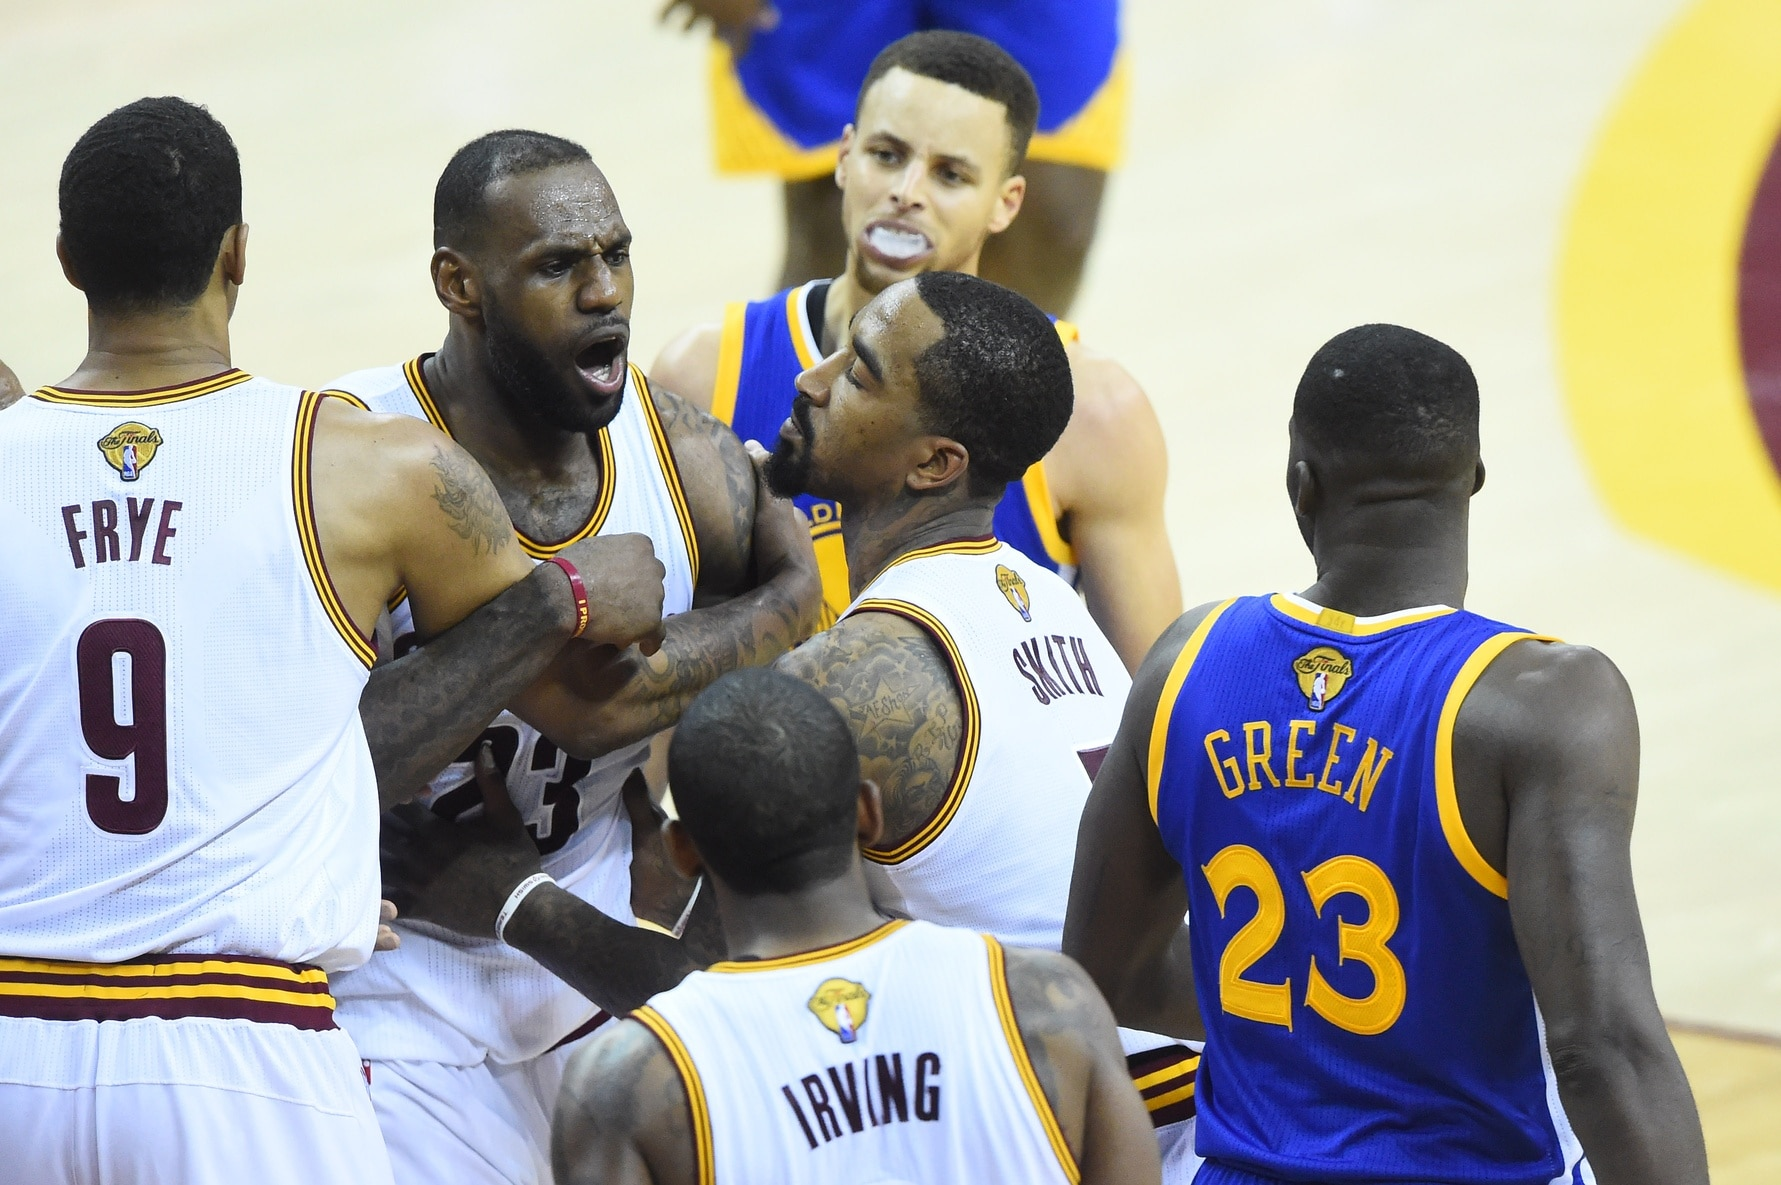 Jun 10, 2016; Cleveland, OH, USA; Cleveland Cavaliers forward LeBron James (23) exchanges words with Golden State Warriors forward Draymond Green (23) during the fourth quarter in game four of the NBA Finals at Quicken Loans Arena. The Warriors won 108-97. Mandatory Credit: David Richard-USA TODAY Sports